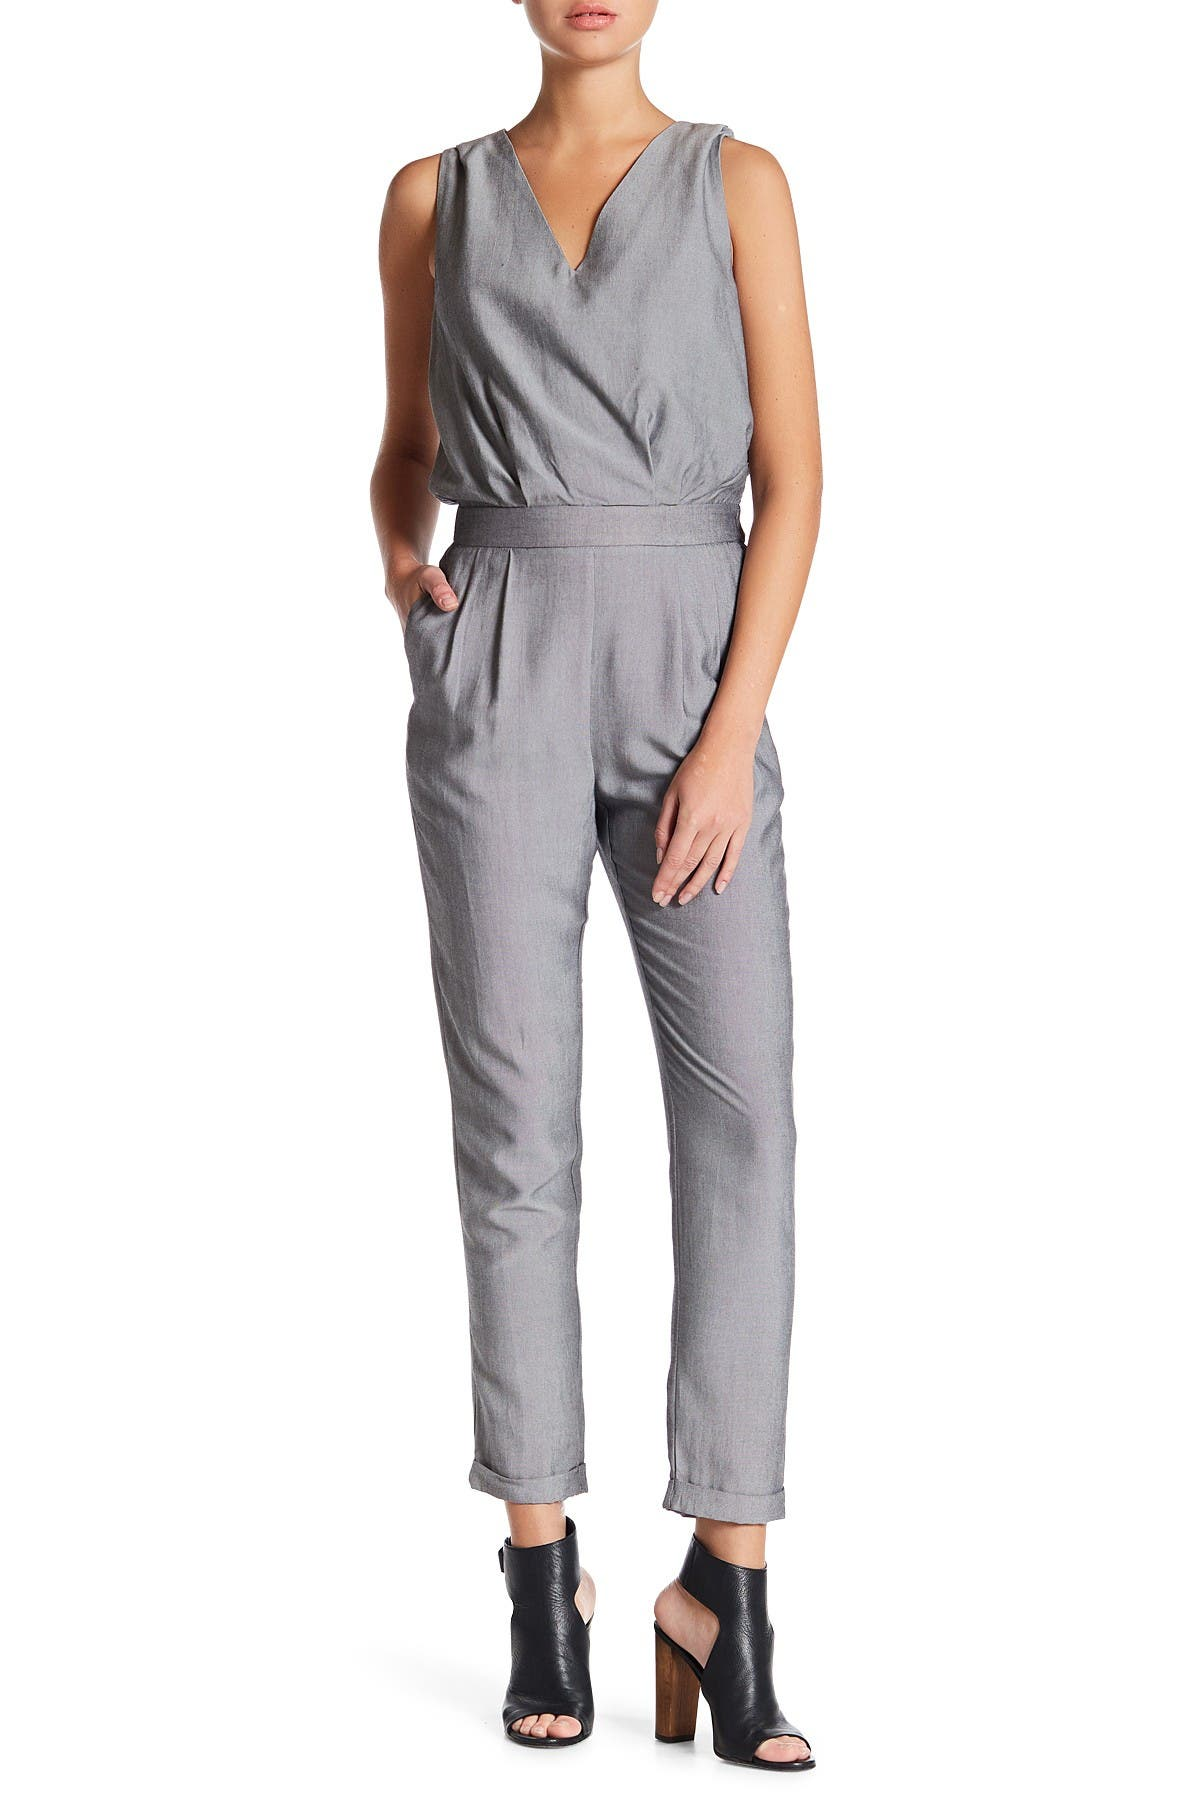 Image of FRNCH Sleeveless Jumpsuit